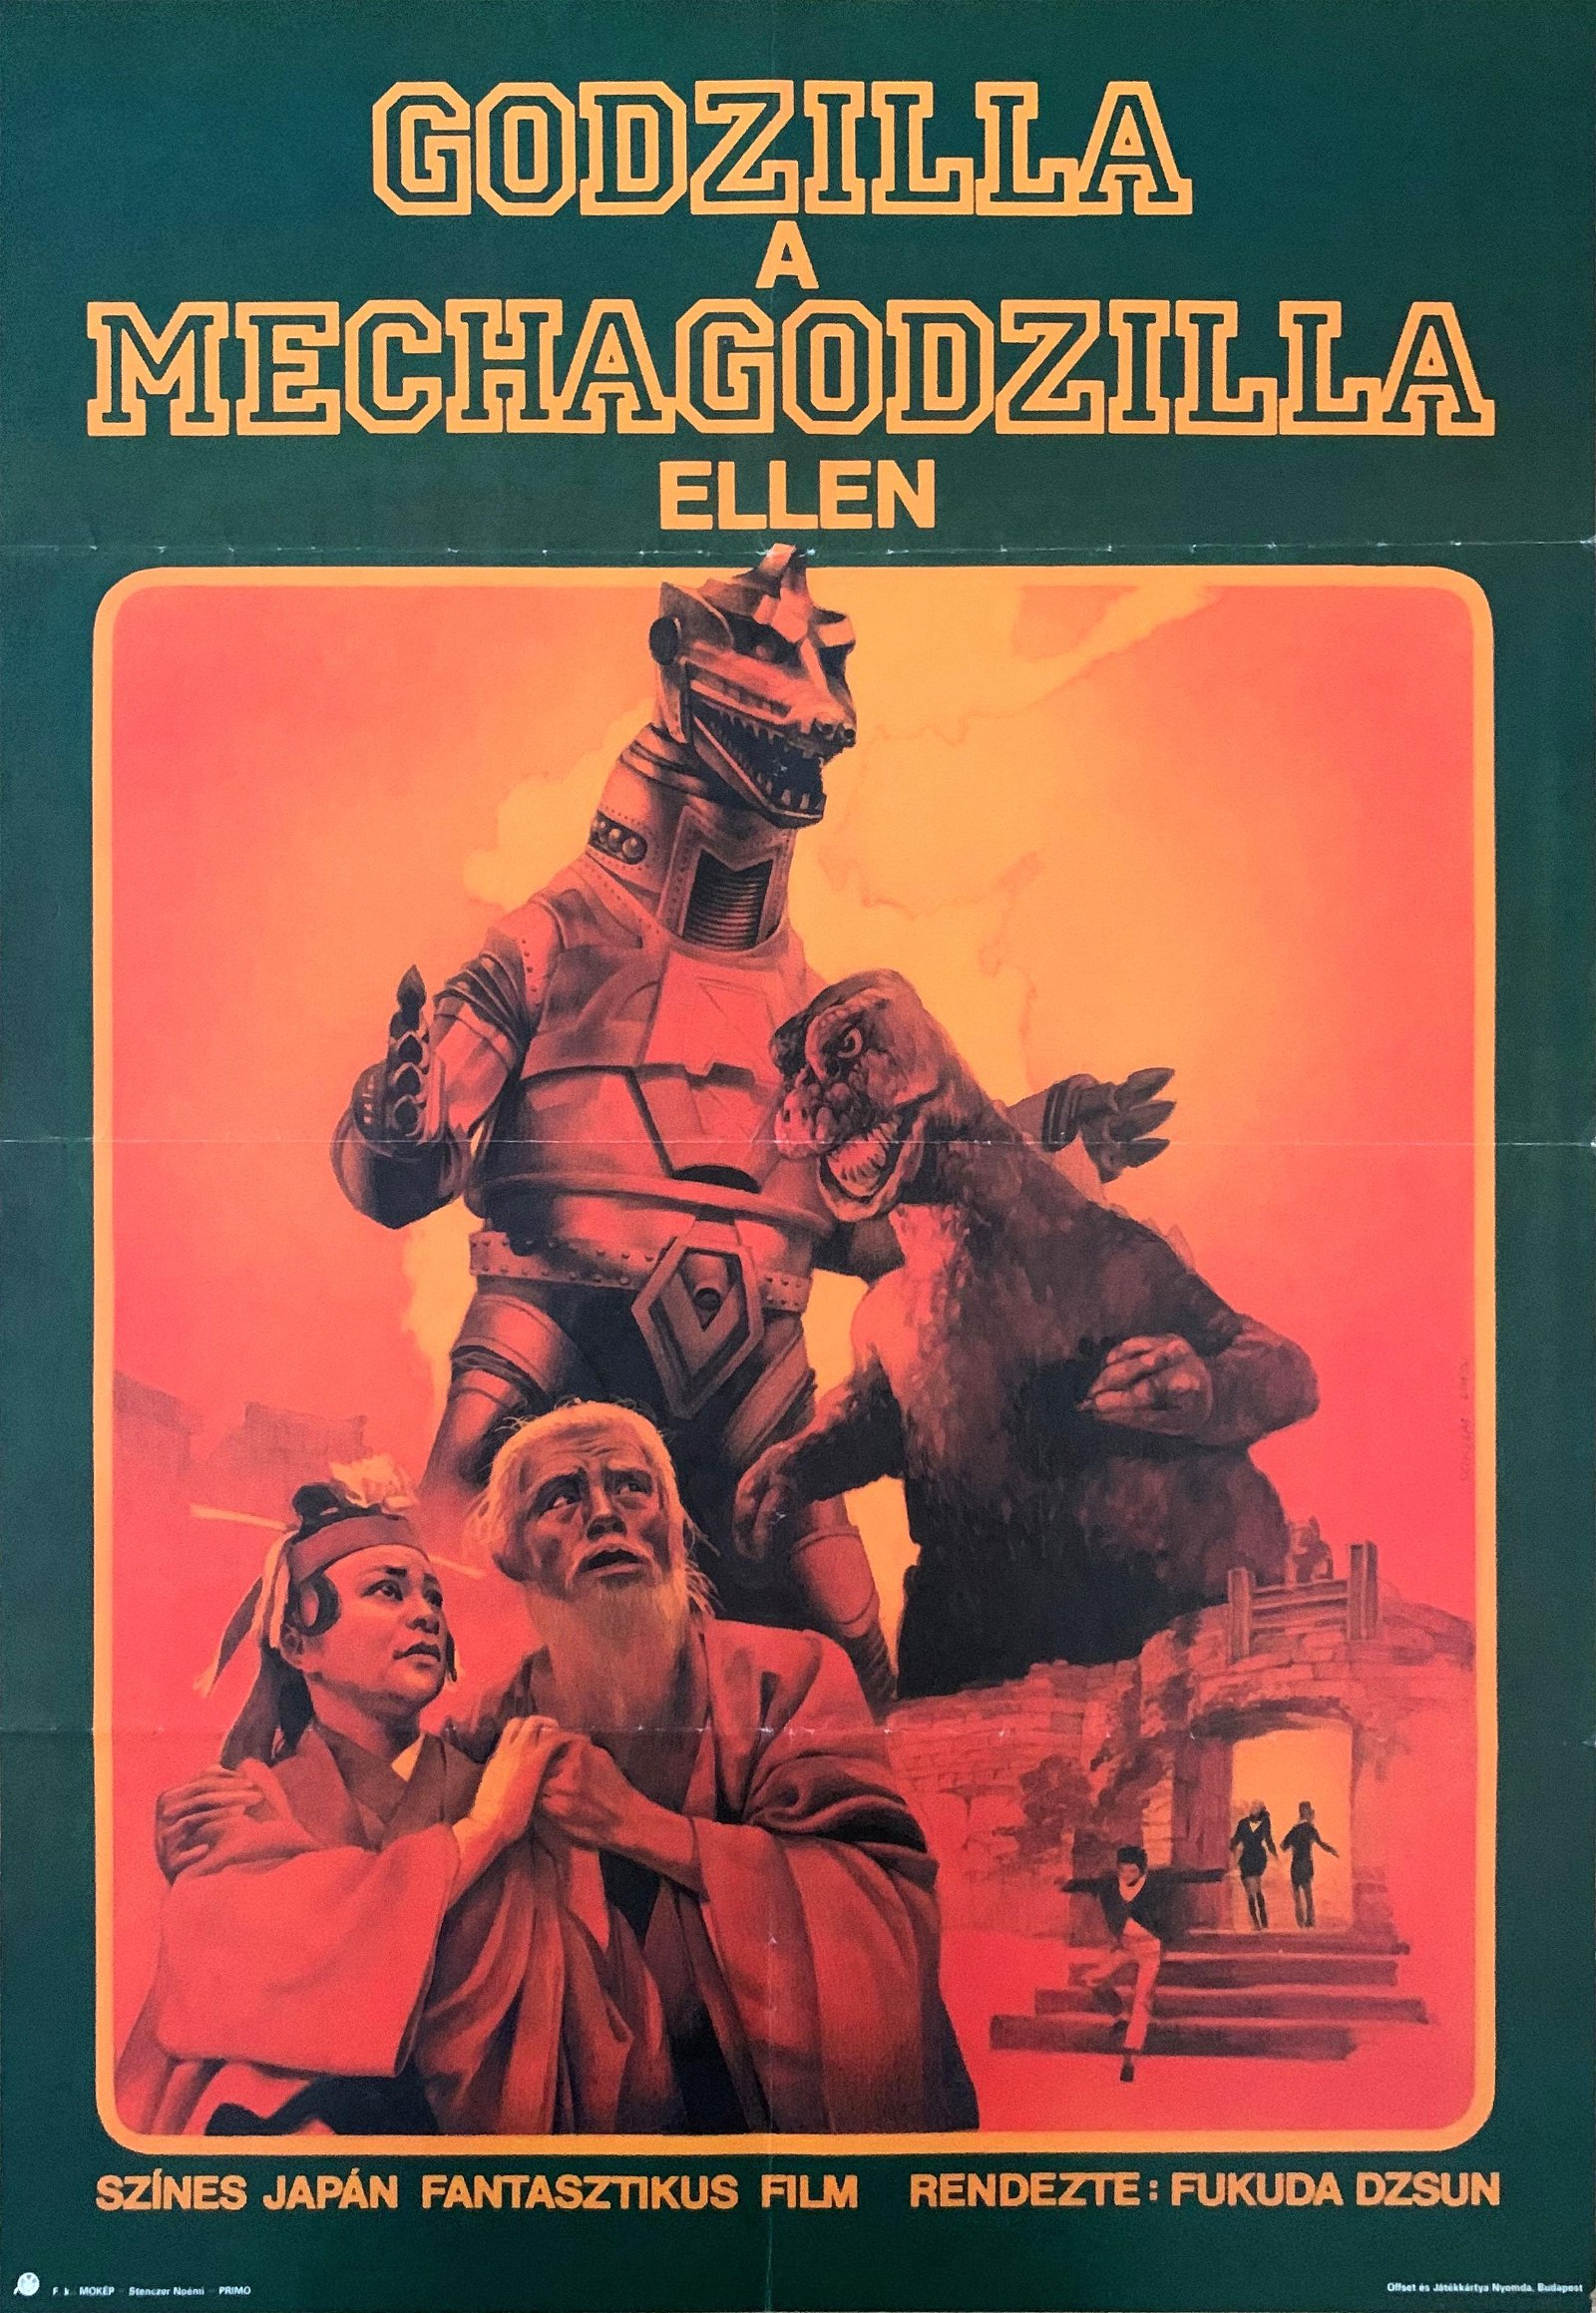 Movie Poster Sci-Fi Godzilla vs Mechagodzilla 1989